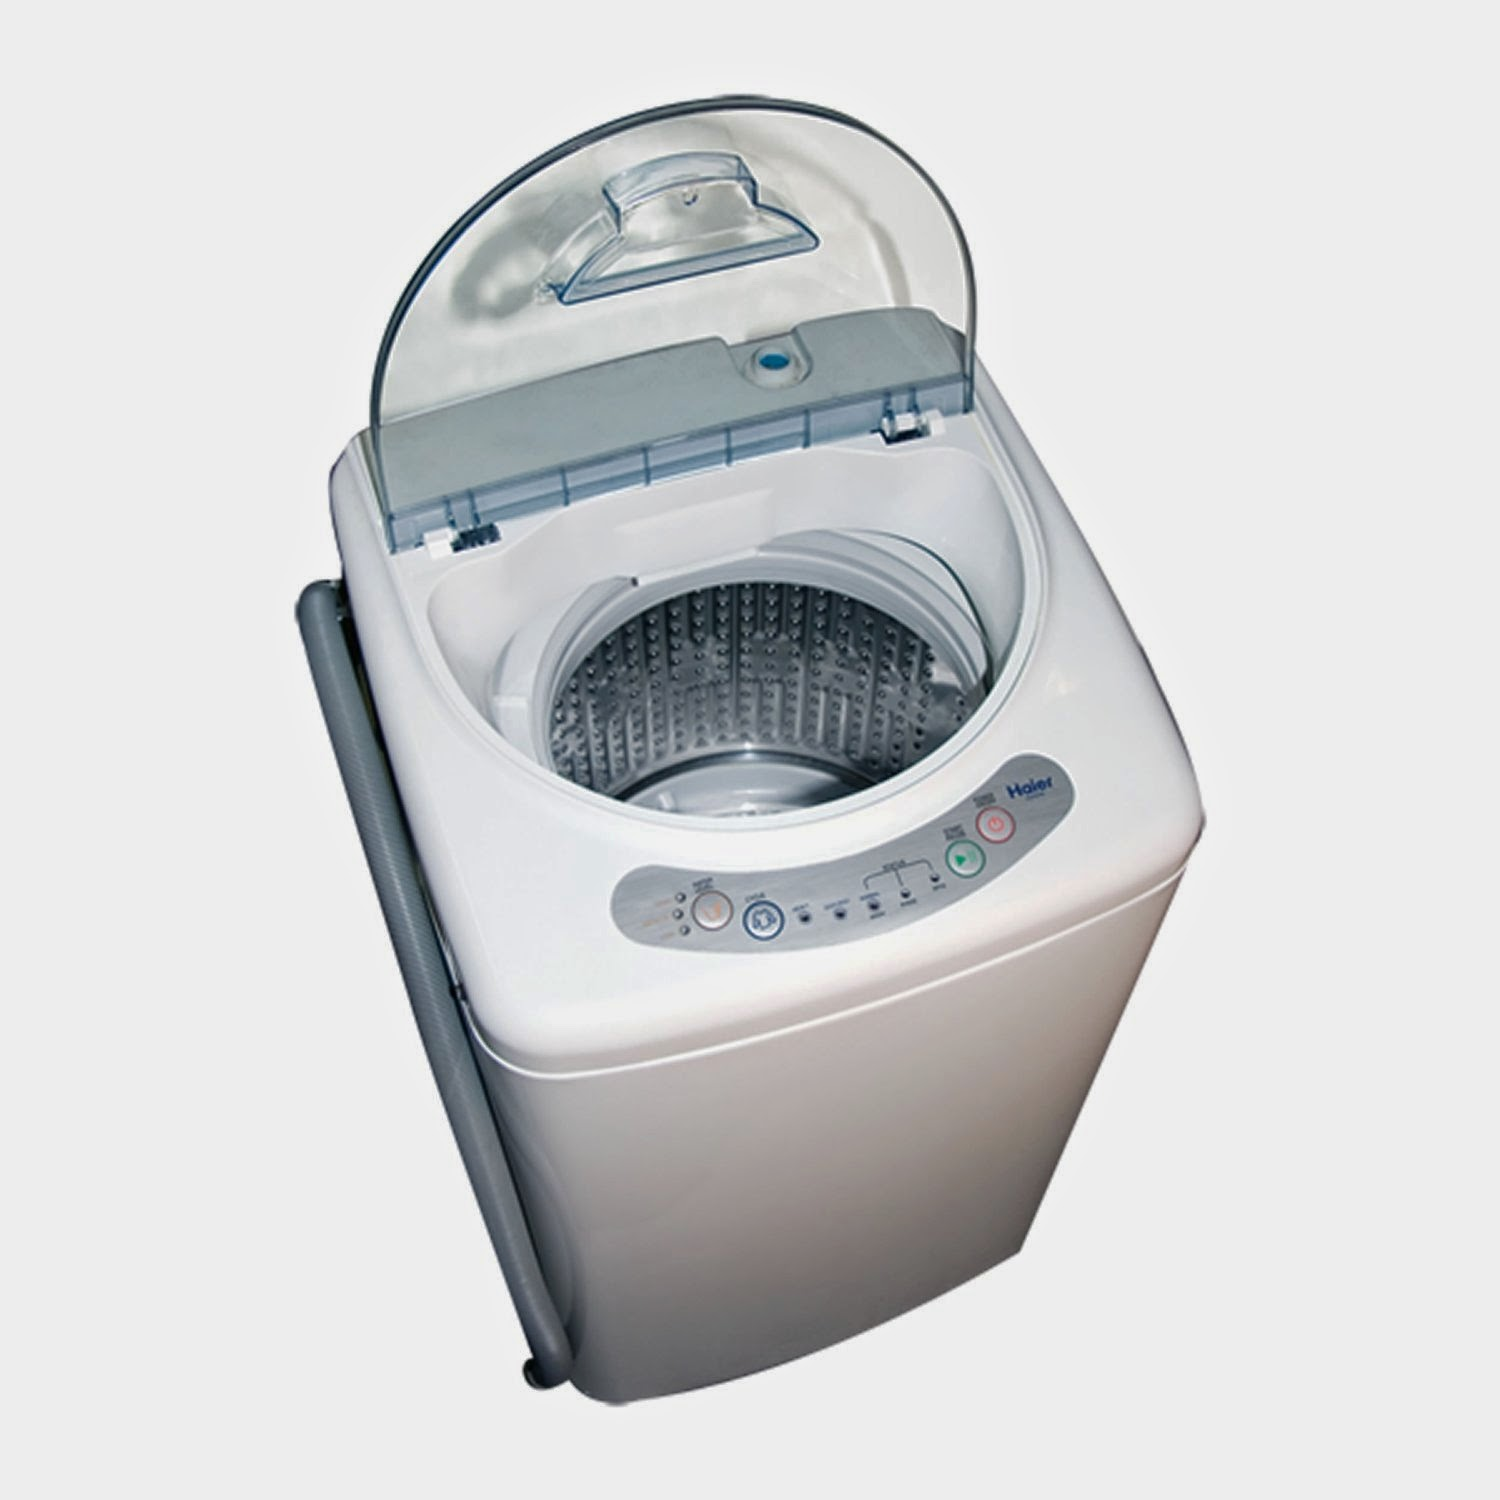 small washer and dryer: small portable washer and dryer